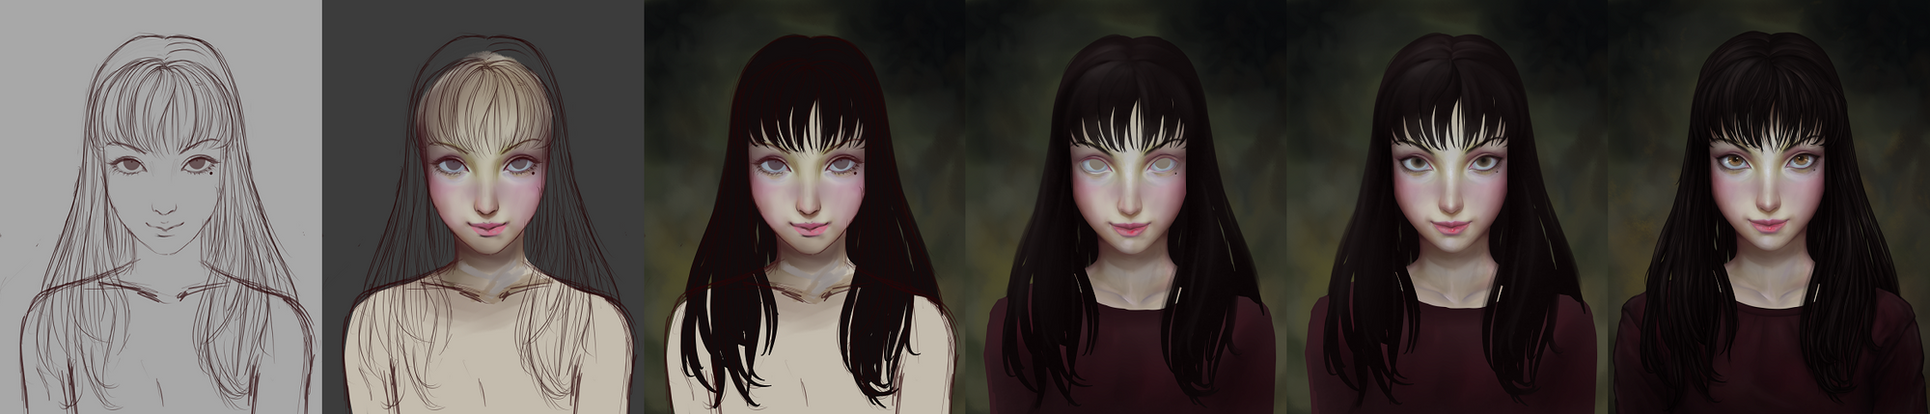 Tomie - Process by Neideen